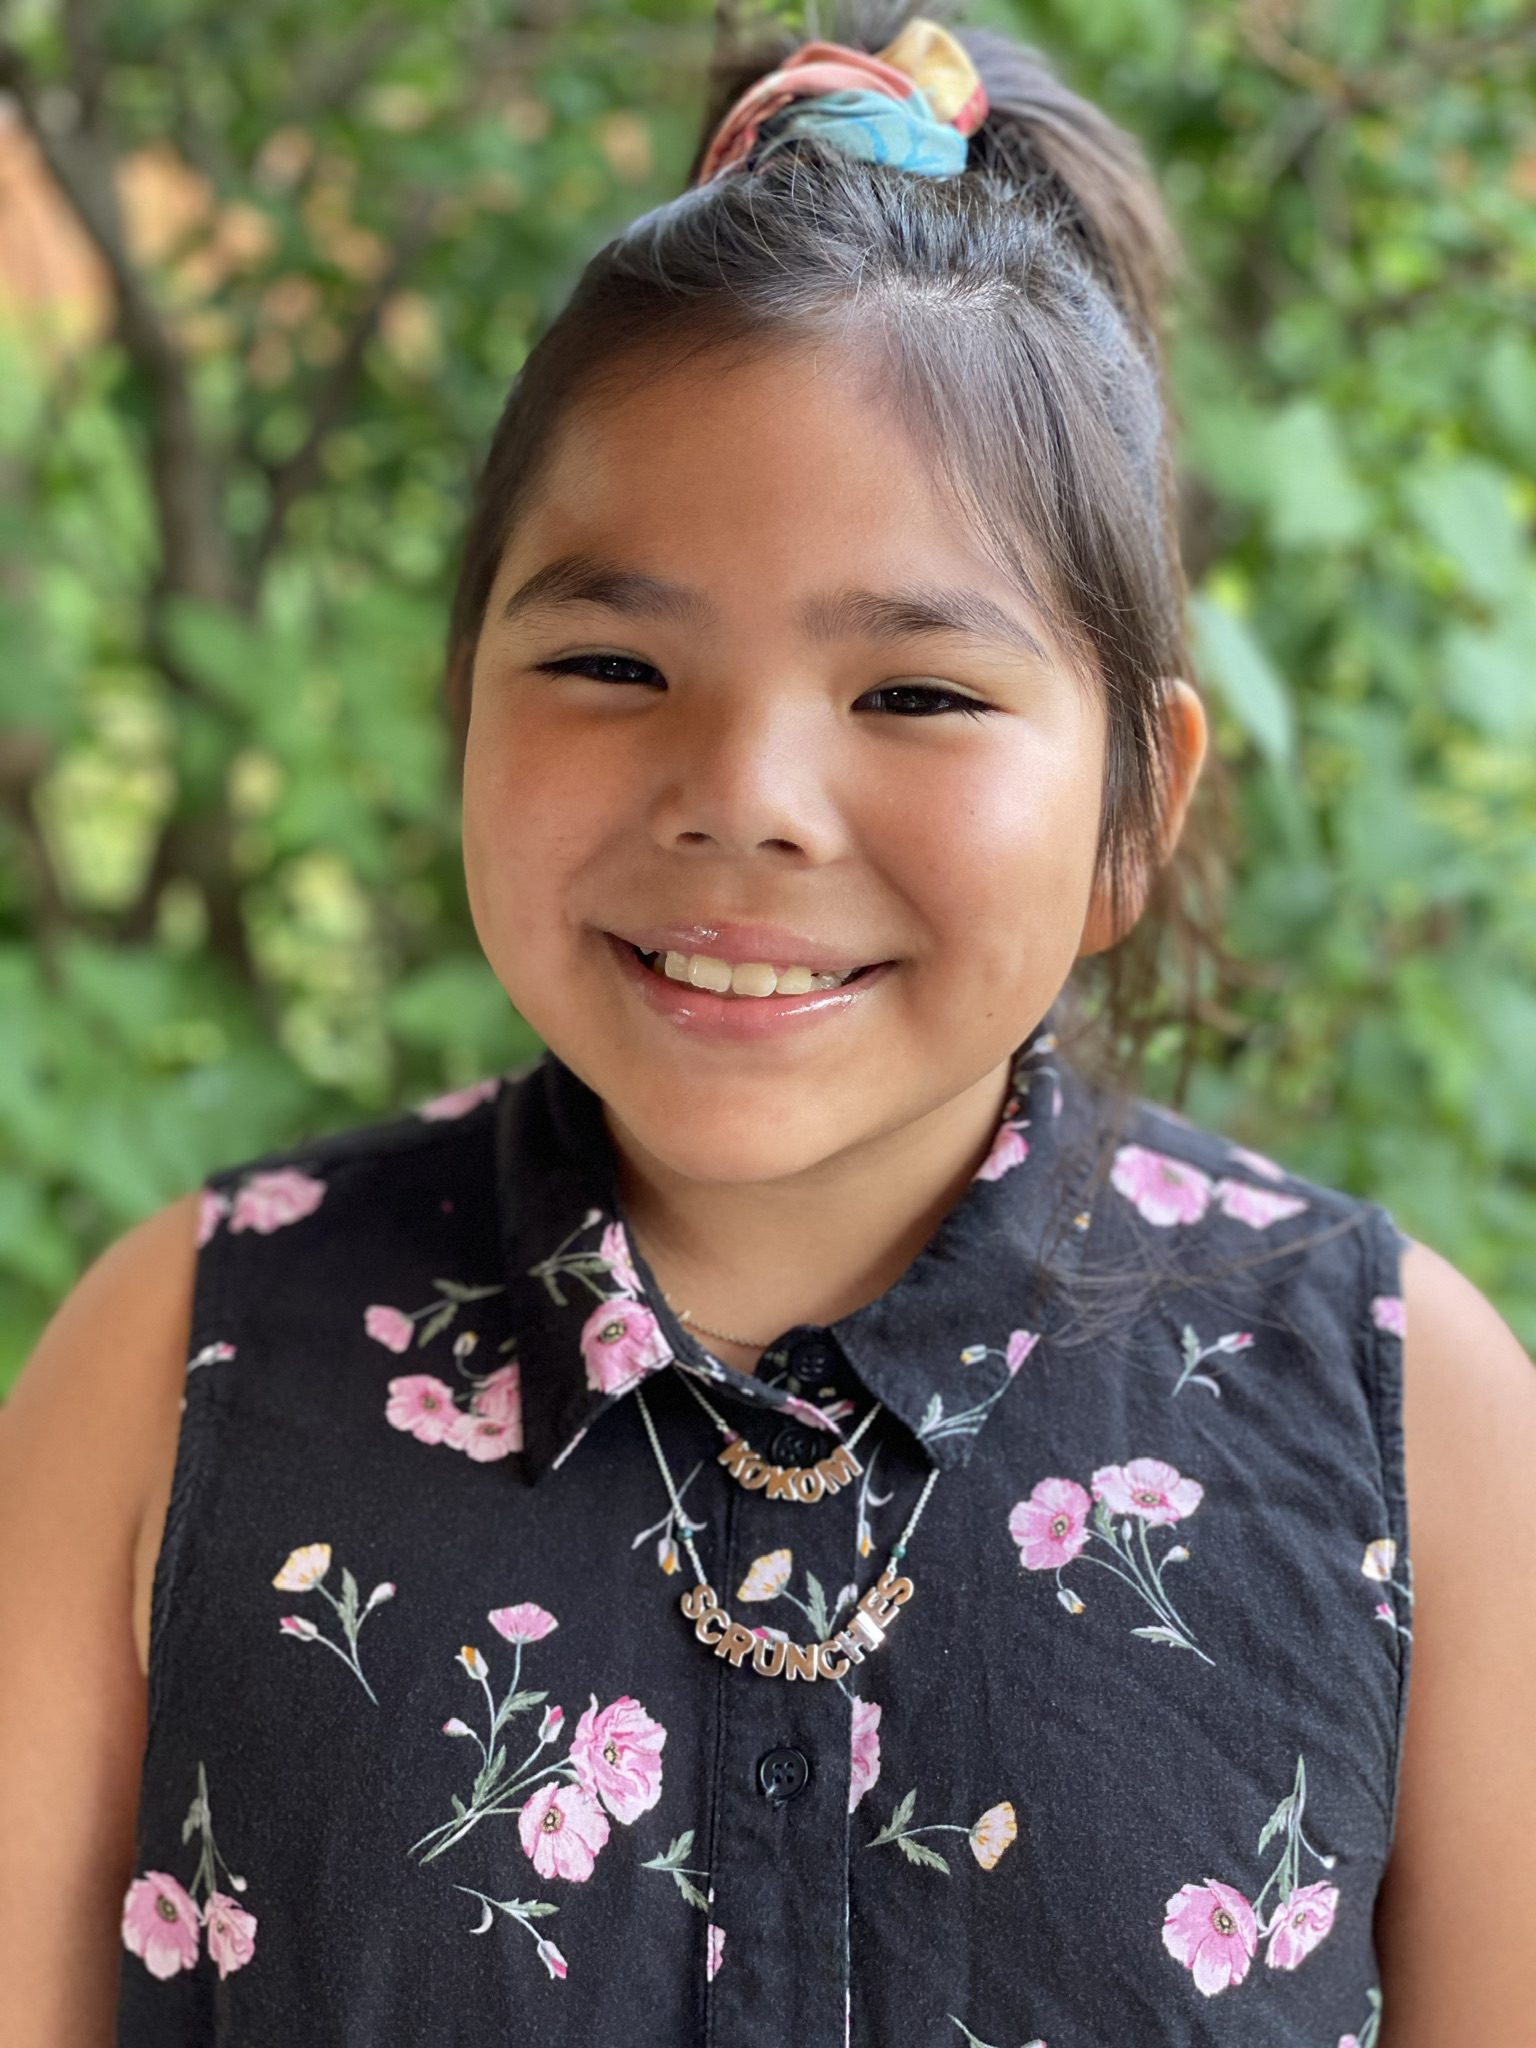 Mya Beaudry 10-year-old Founder and CEO of Kokom Scrunchies